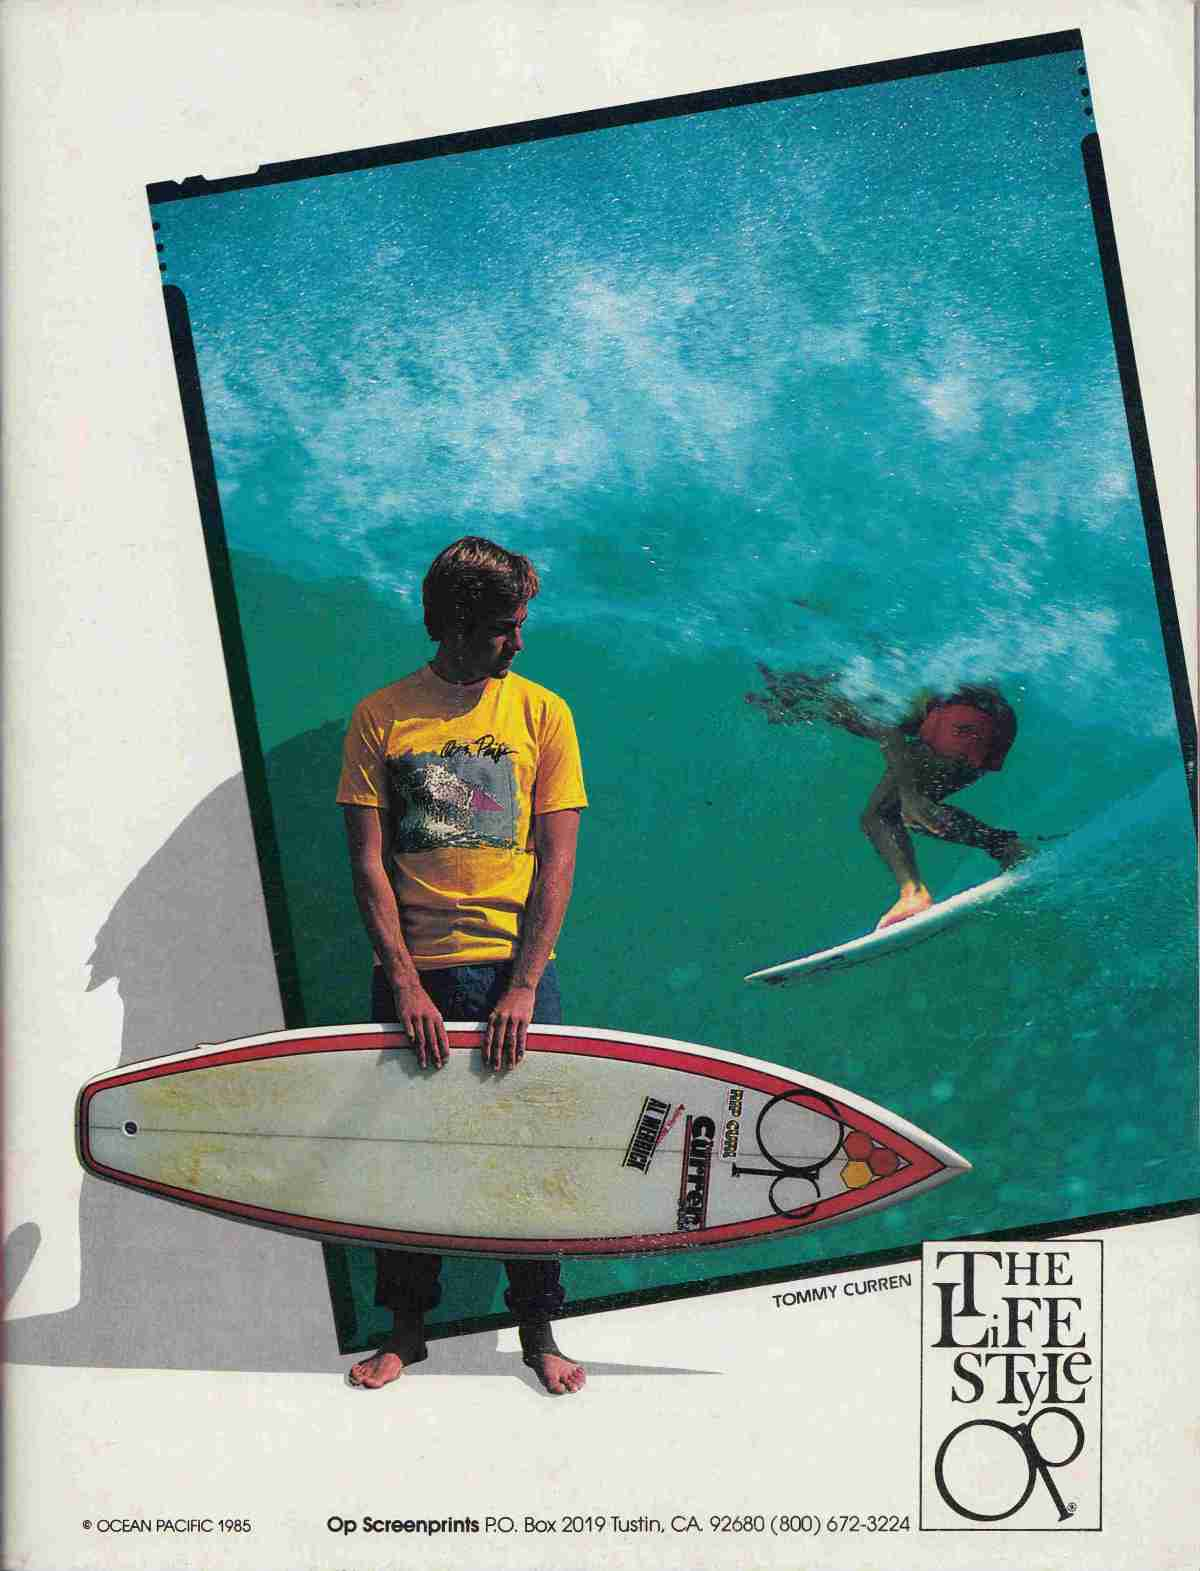 Tom Curren, Ocean Pacific, and Channel Islands Surfboards: Sagas of Shred